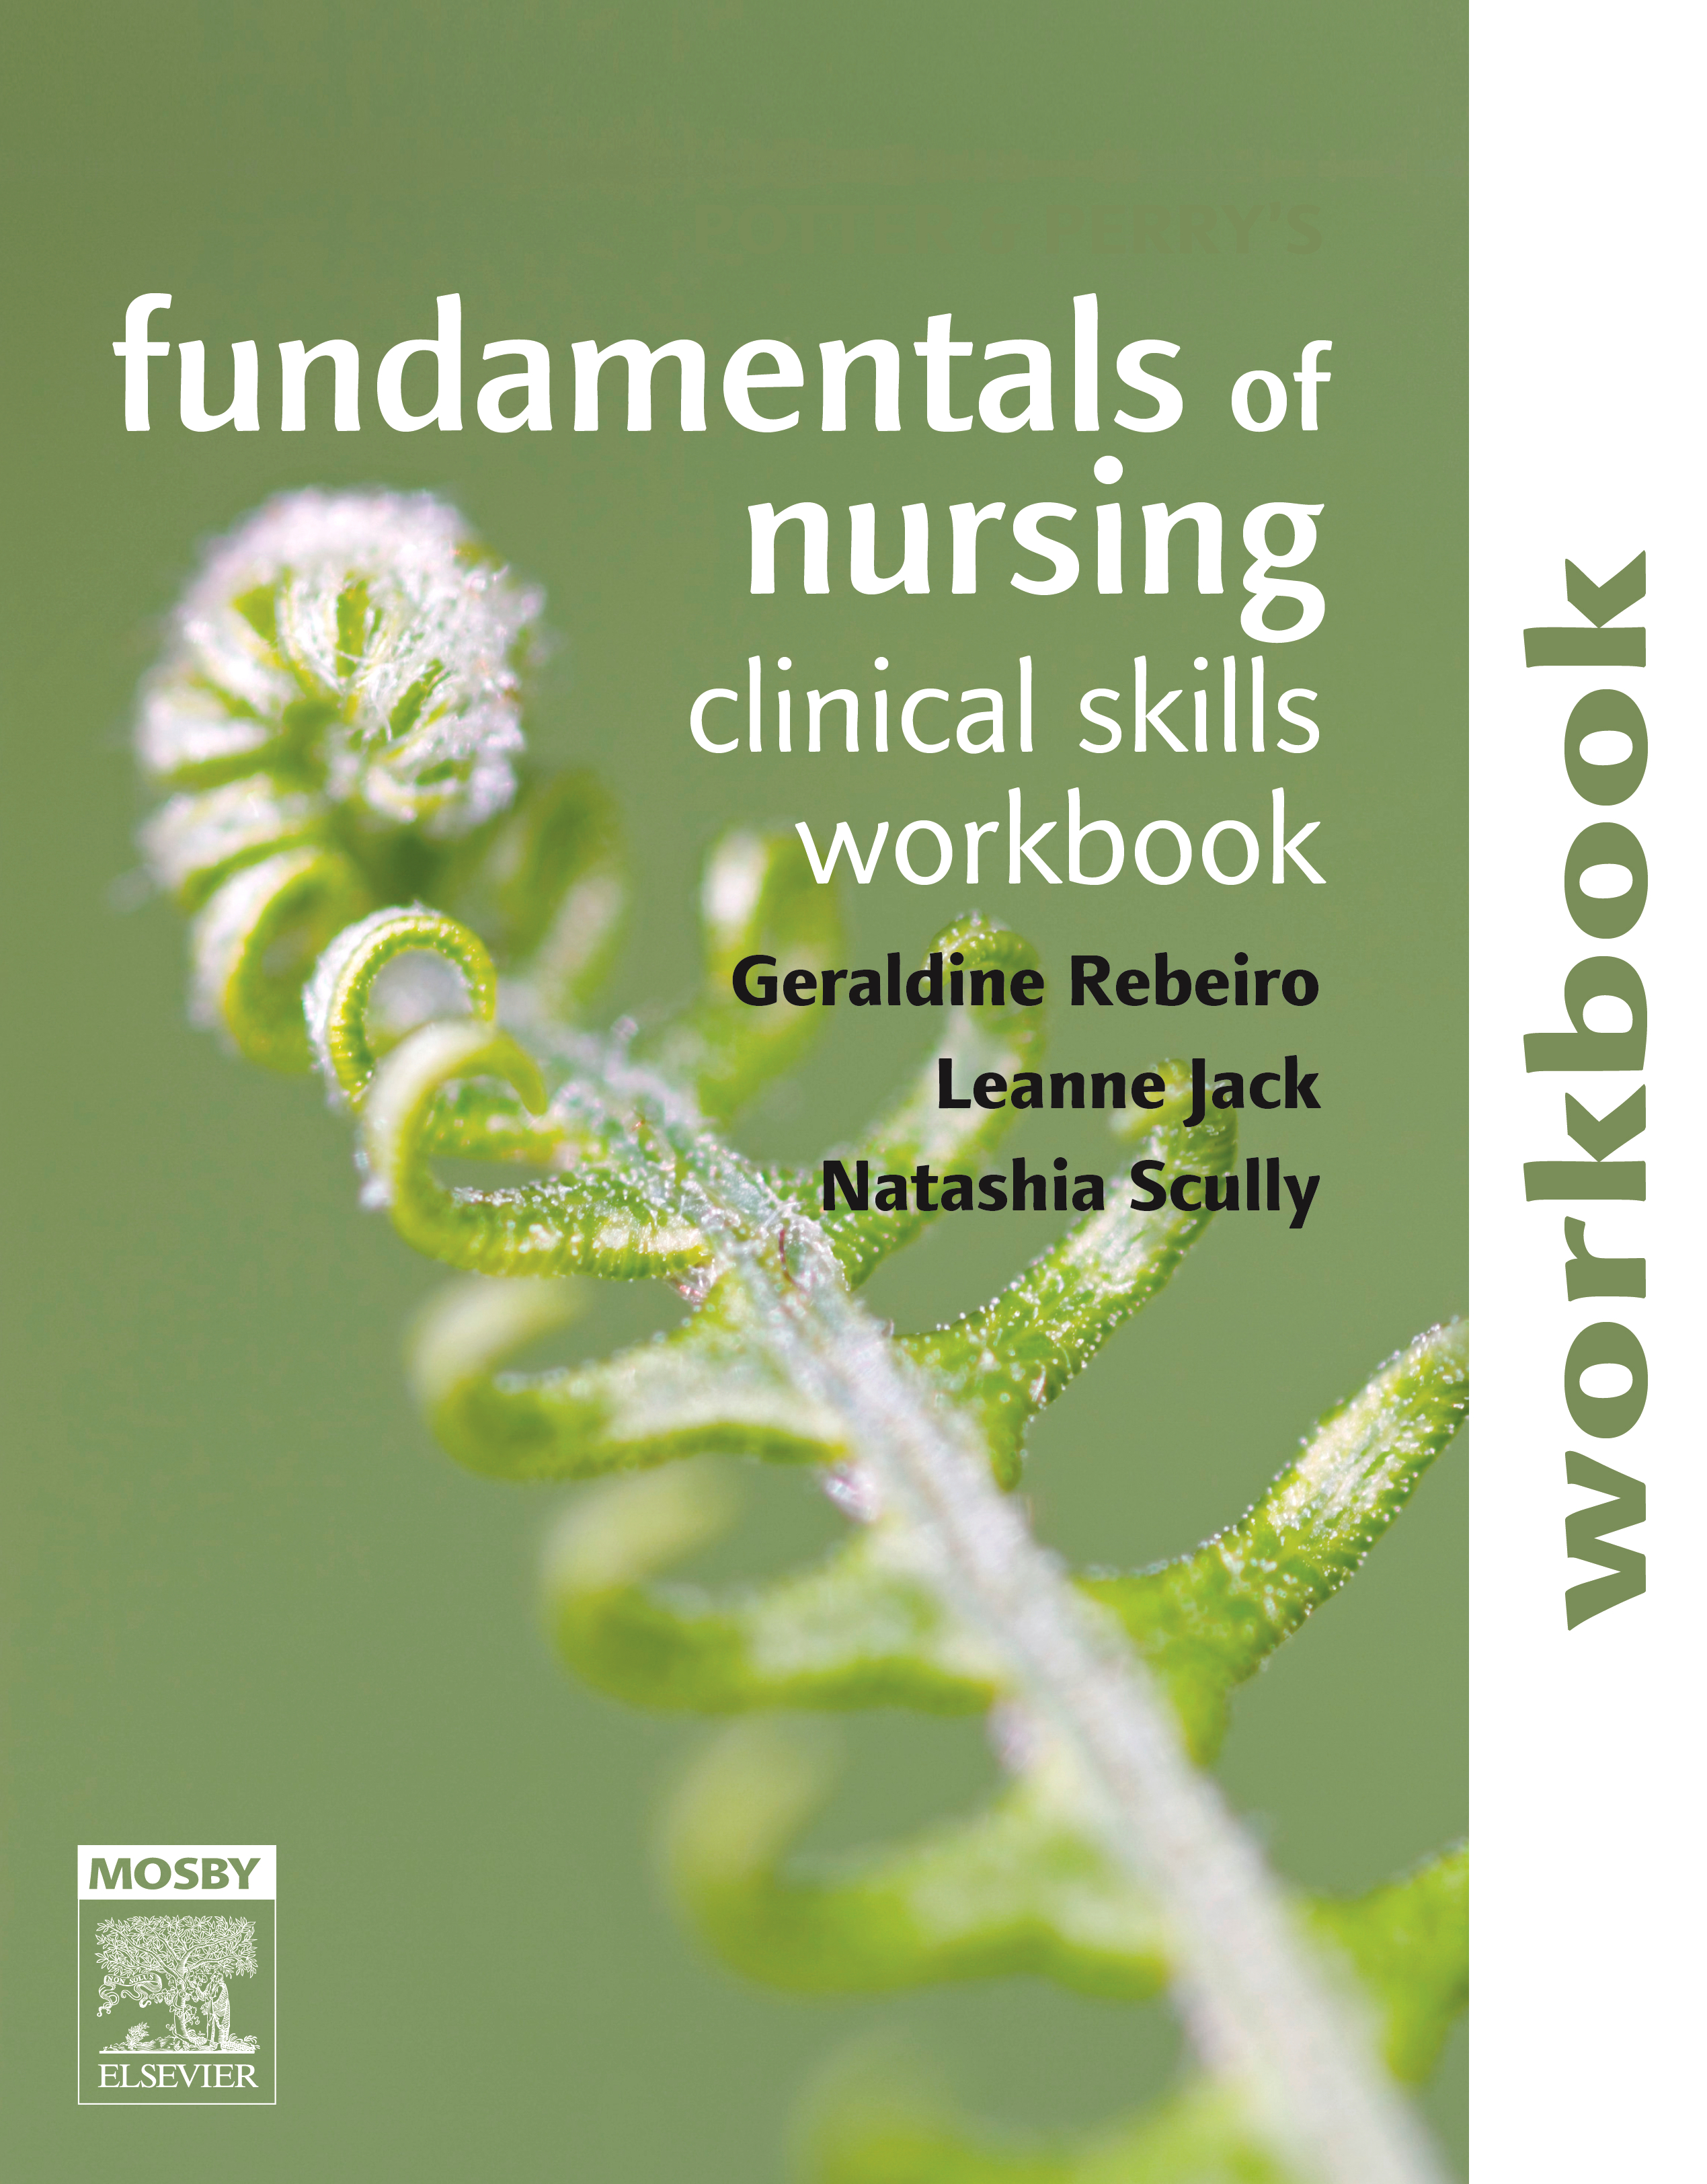 Fundamentals of Nursing: Clinical Skills Workbook